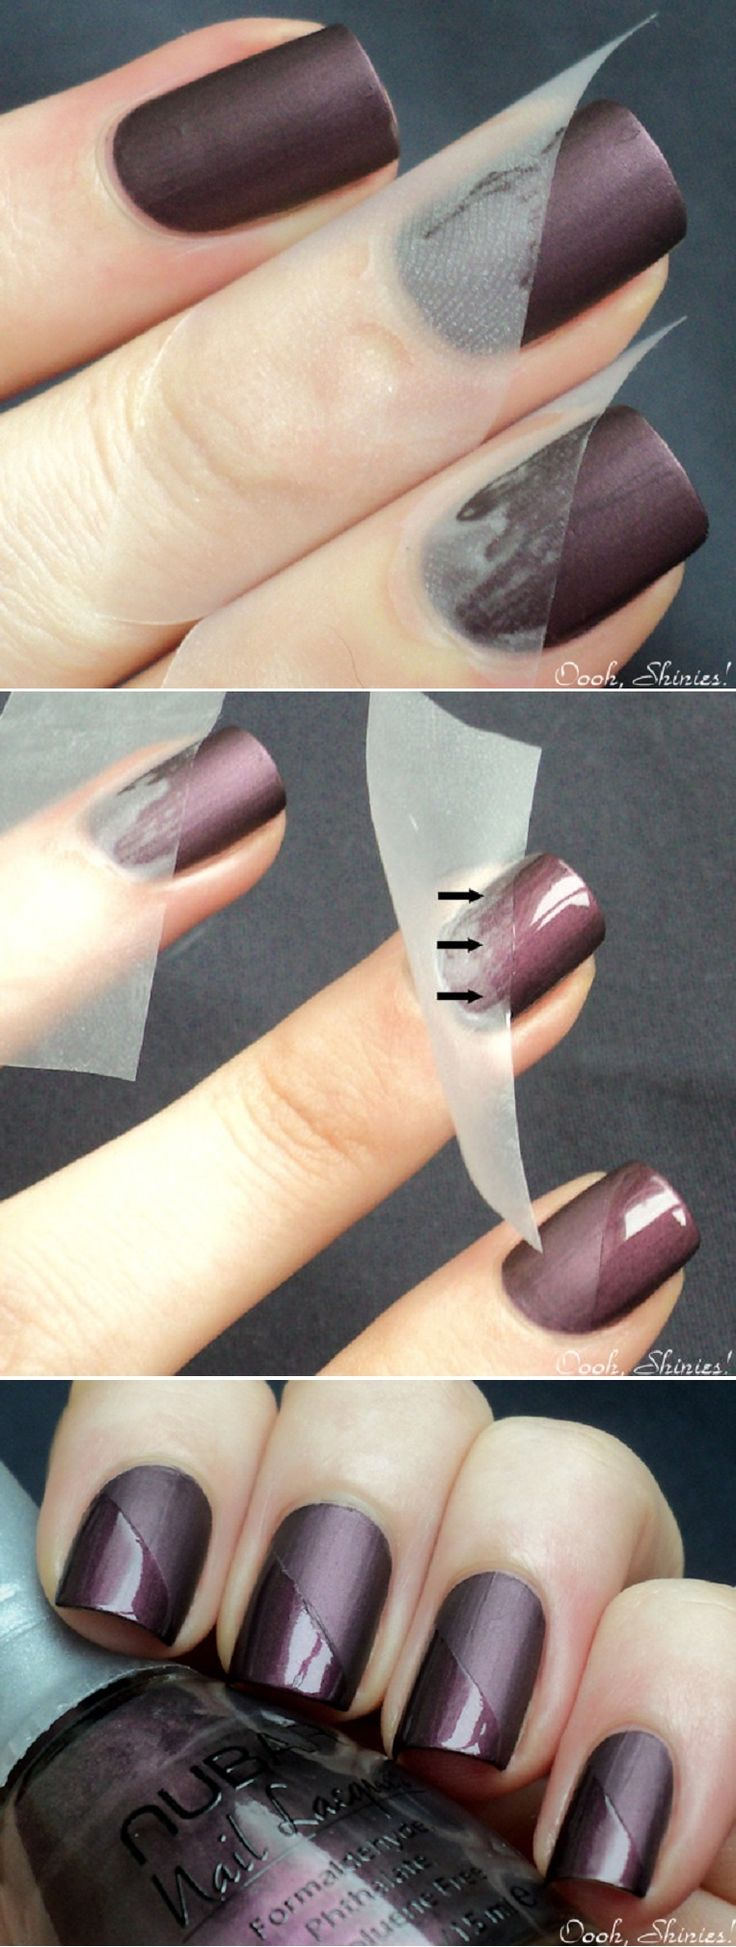 nail designs for fall 2014. 22 looks de belleza perfectos para este fin año. chic nail artchic designs for fall 2014